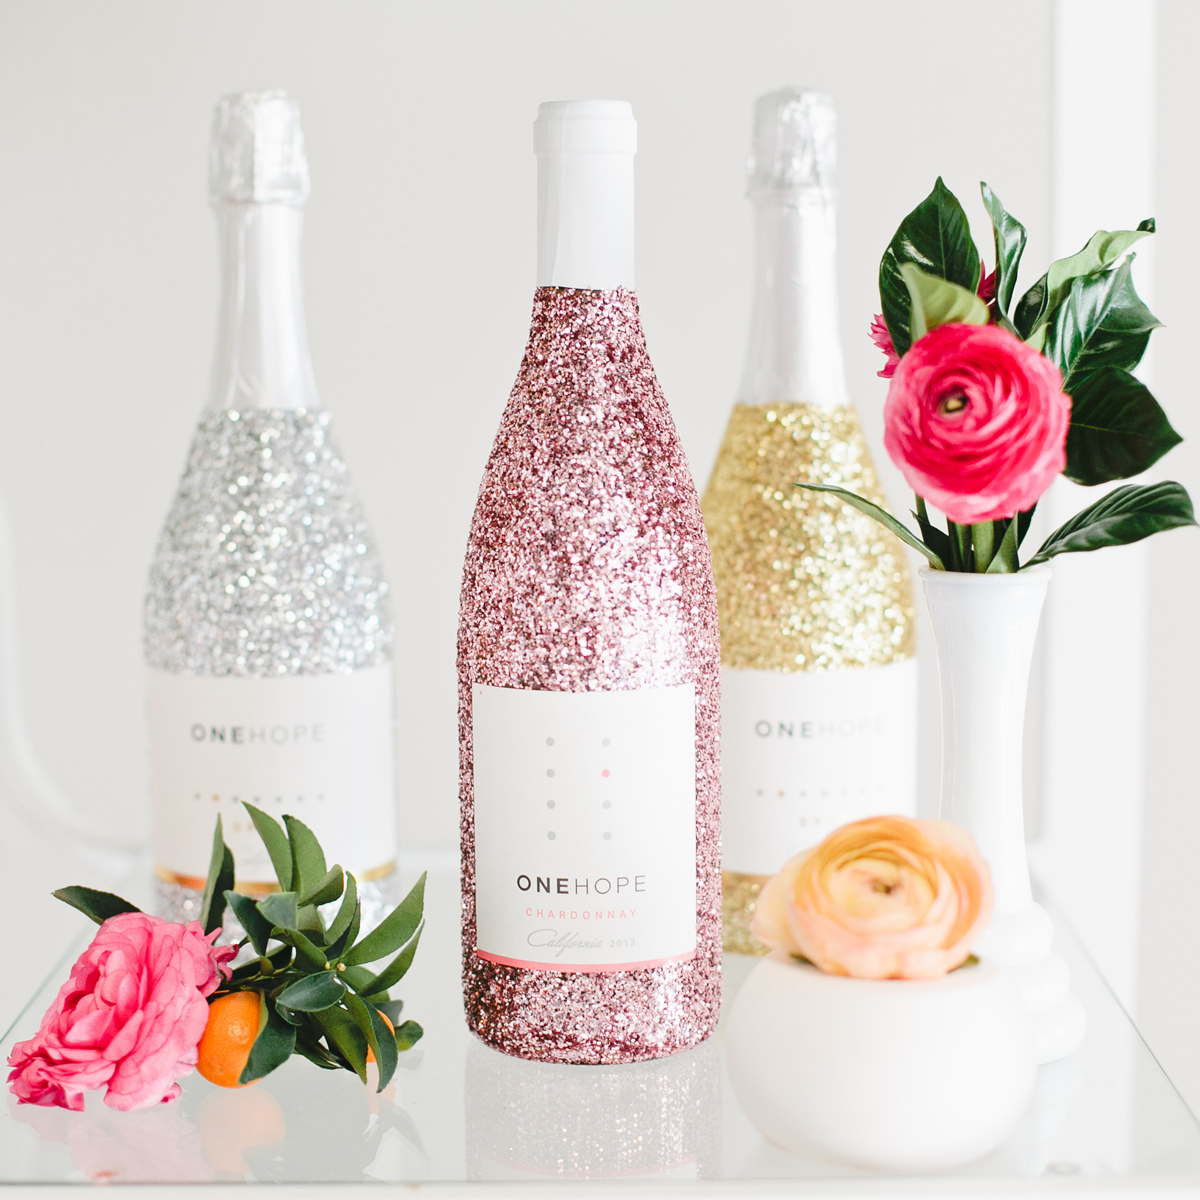 ONEHOPE Glitter Edition Wines, $59-$69